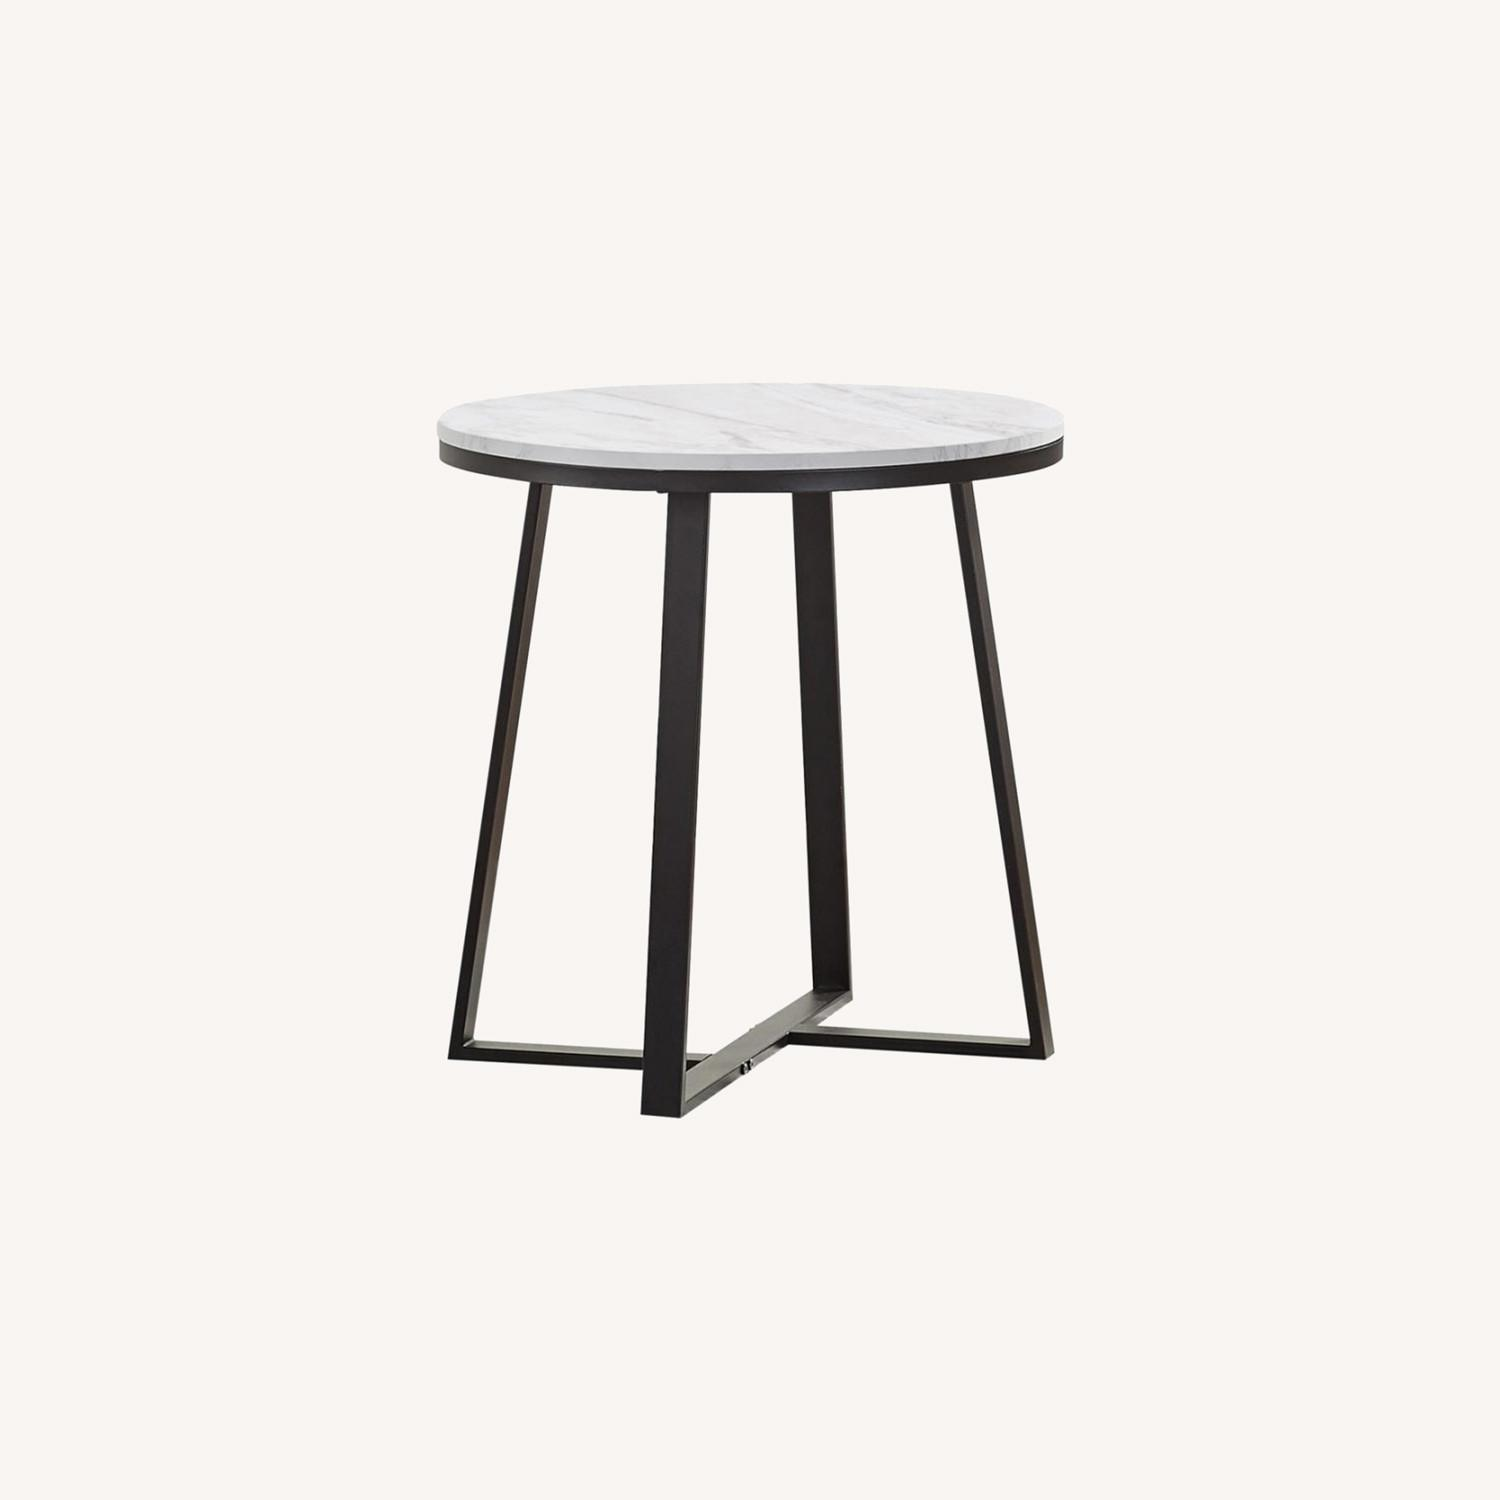 End Table In Faux Marble Top & Matte Black Finish - image-4